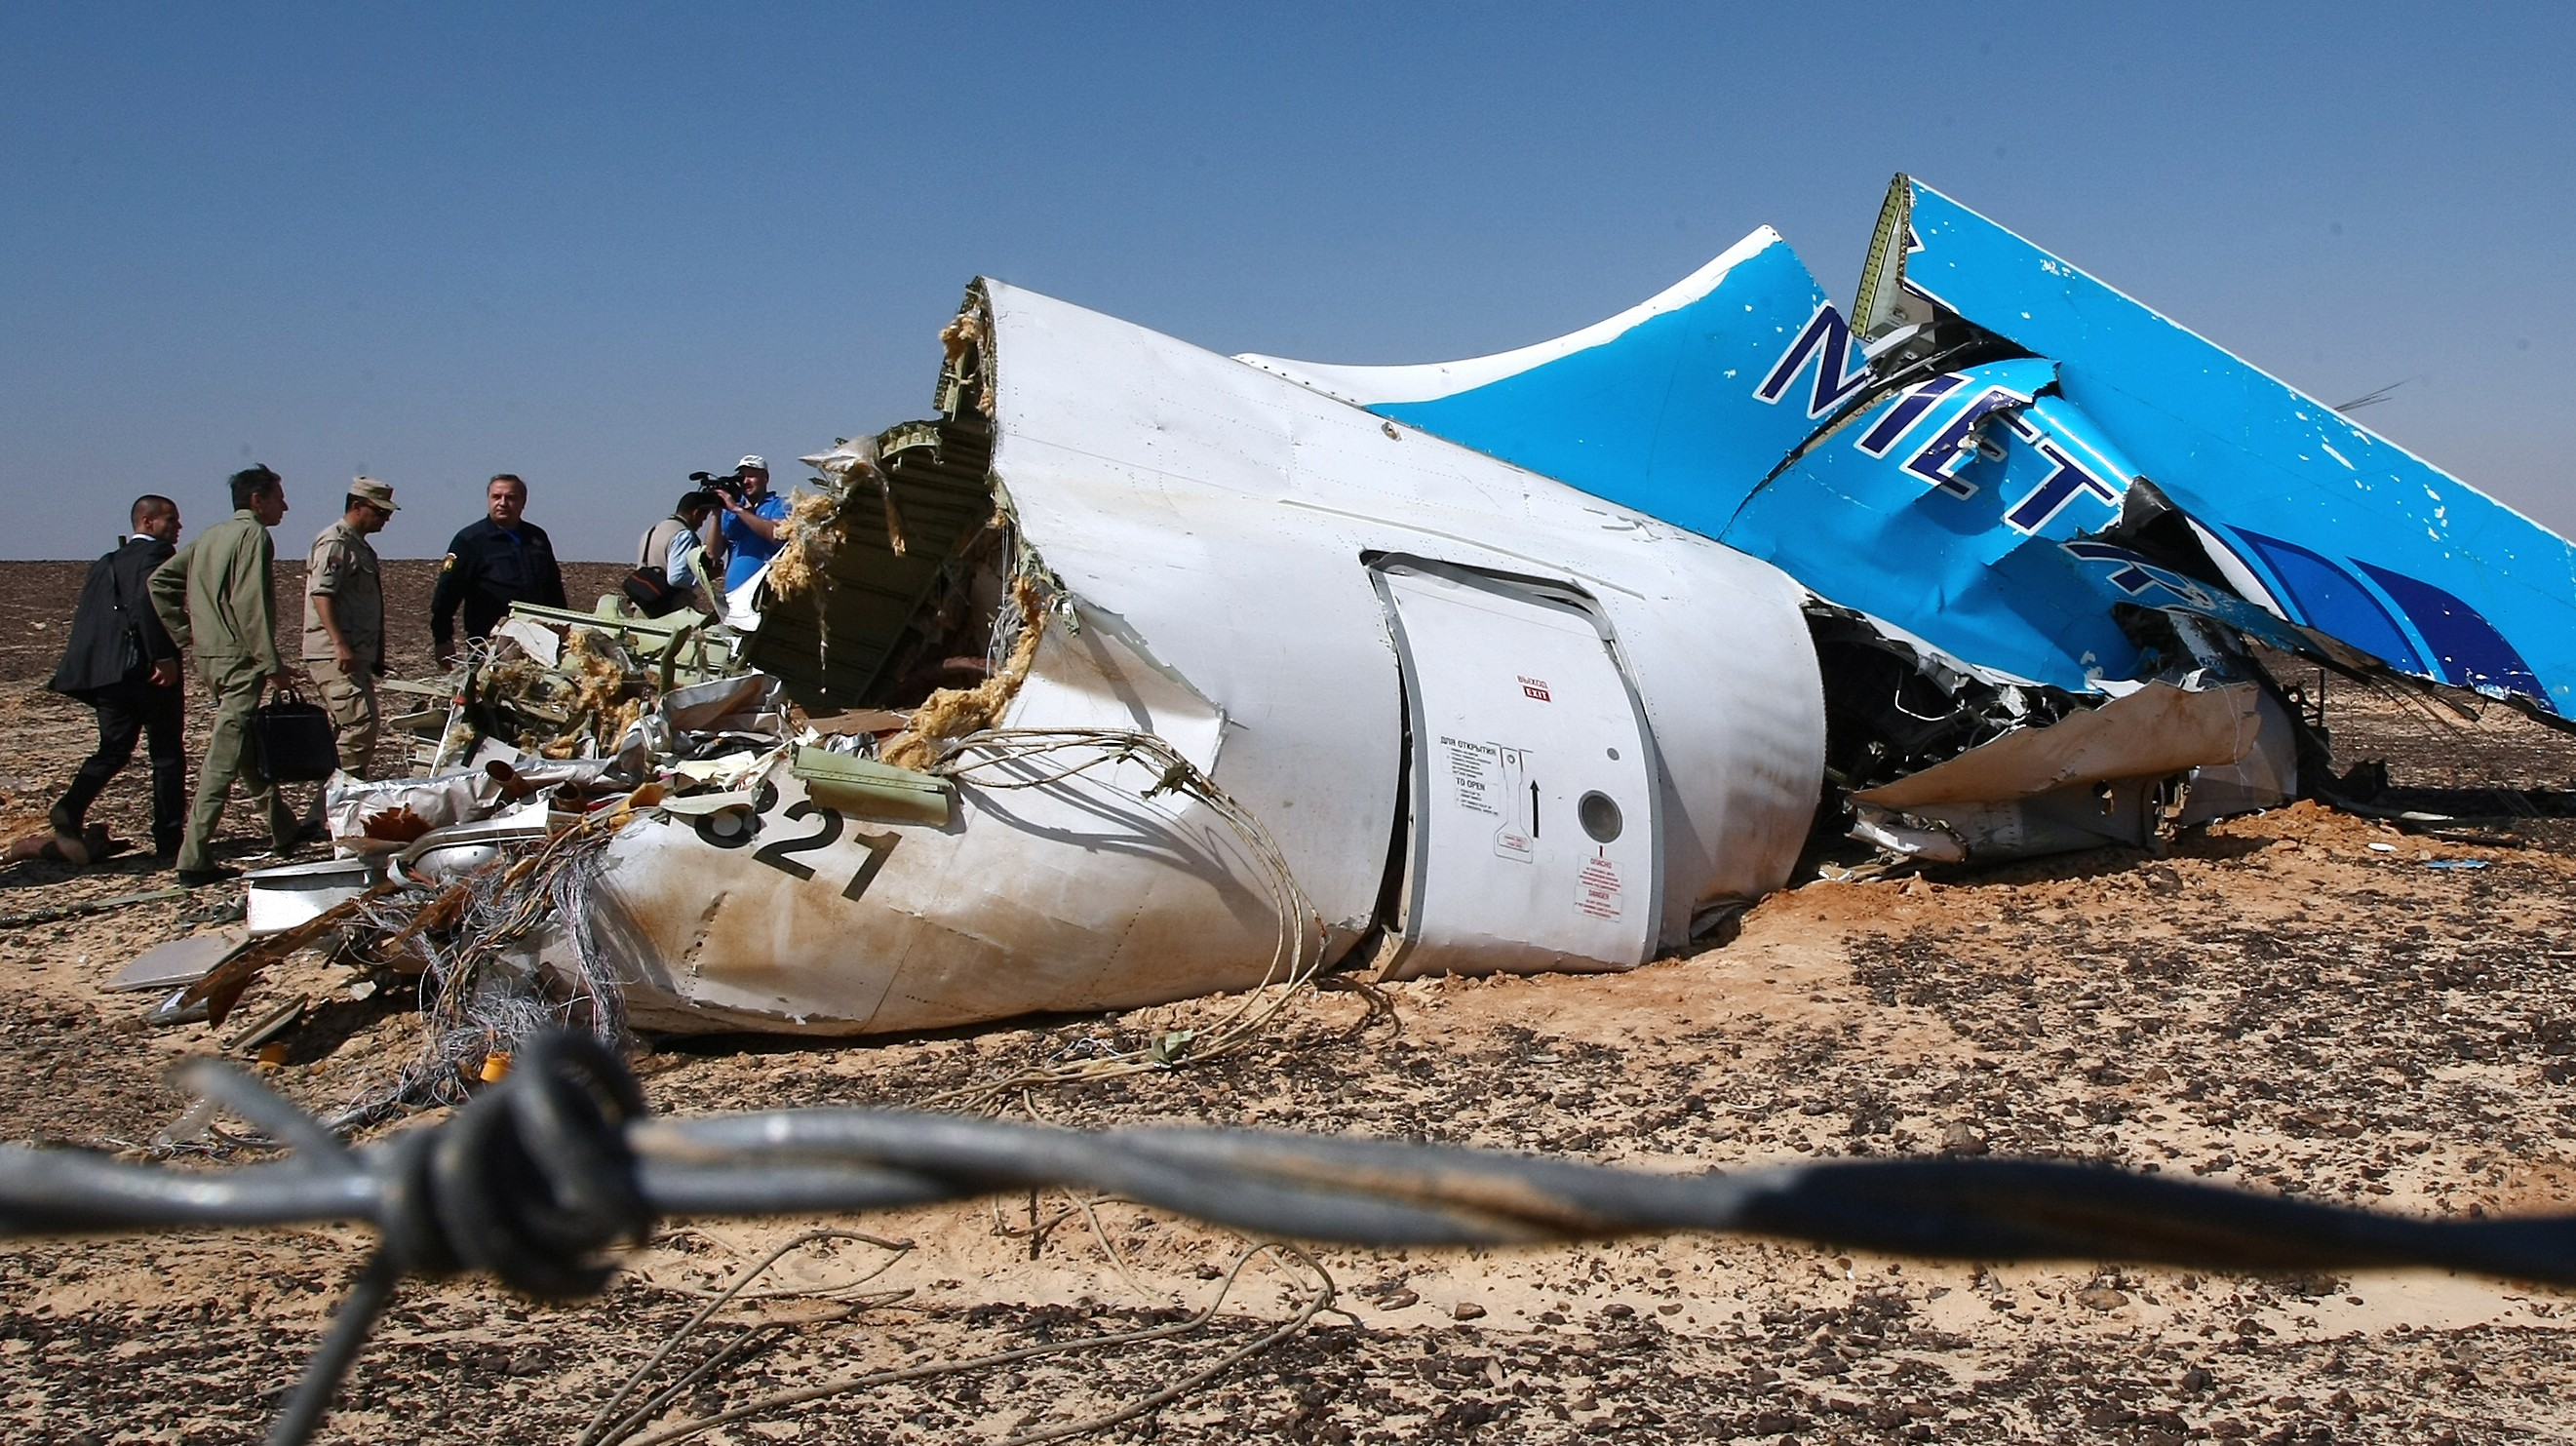 US Officials Are Saying the Russian Airliner That Crashed in Egypt Was Likely Bombed